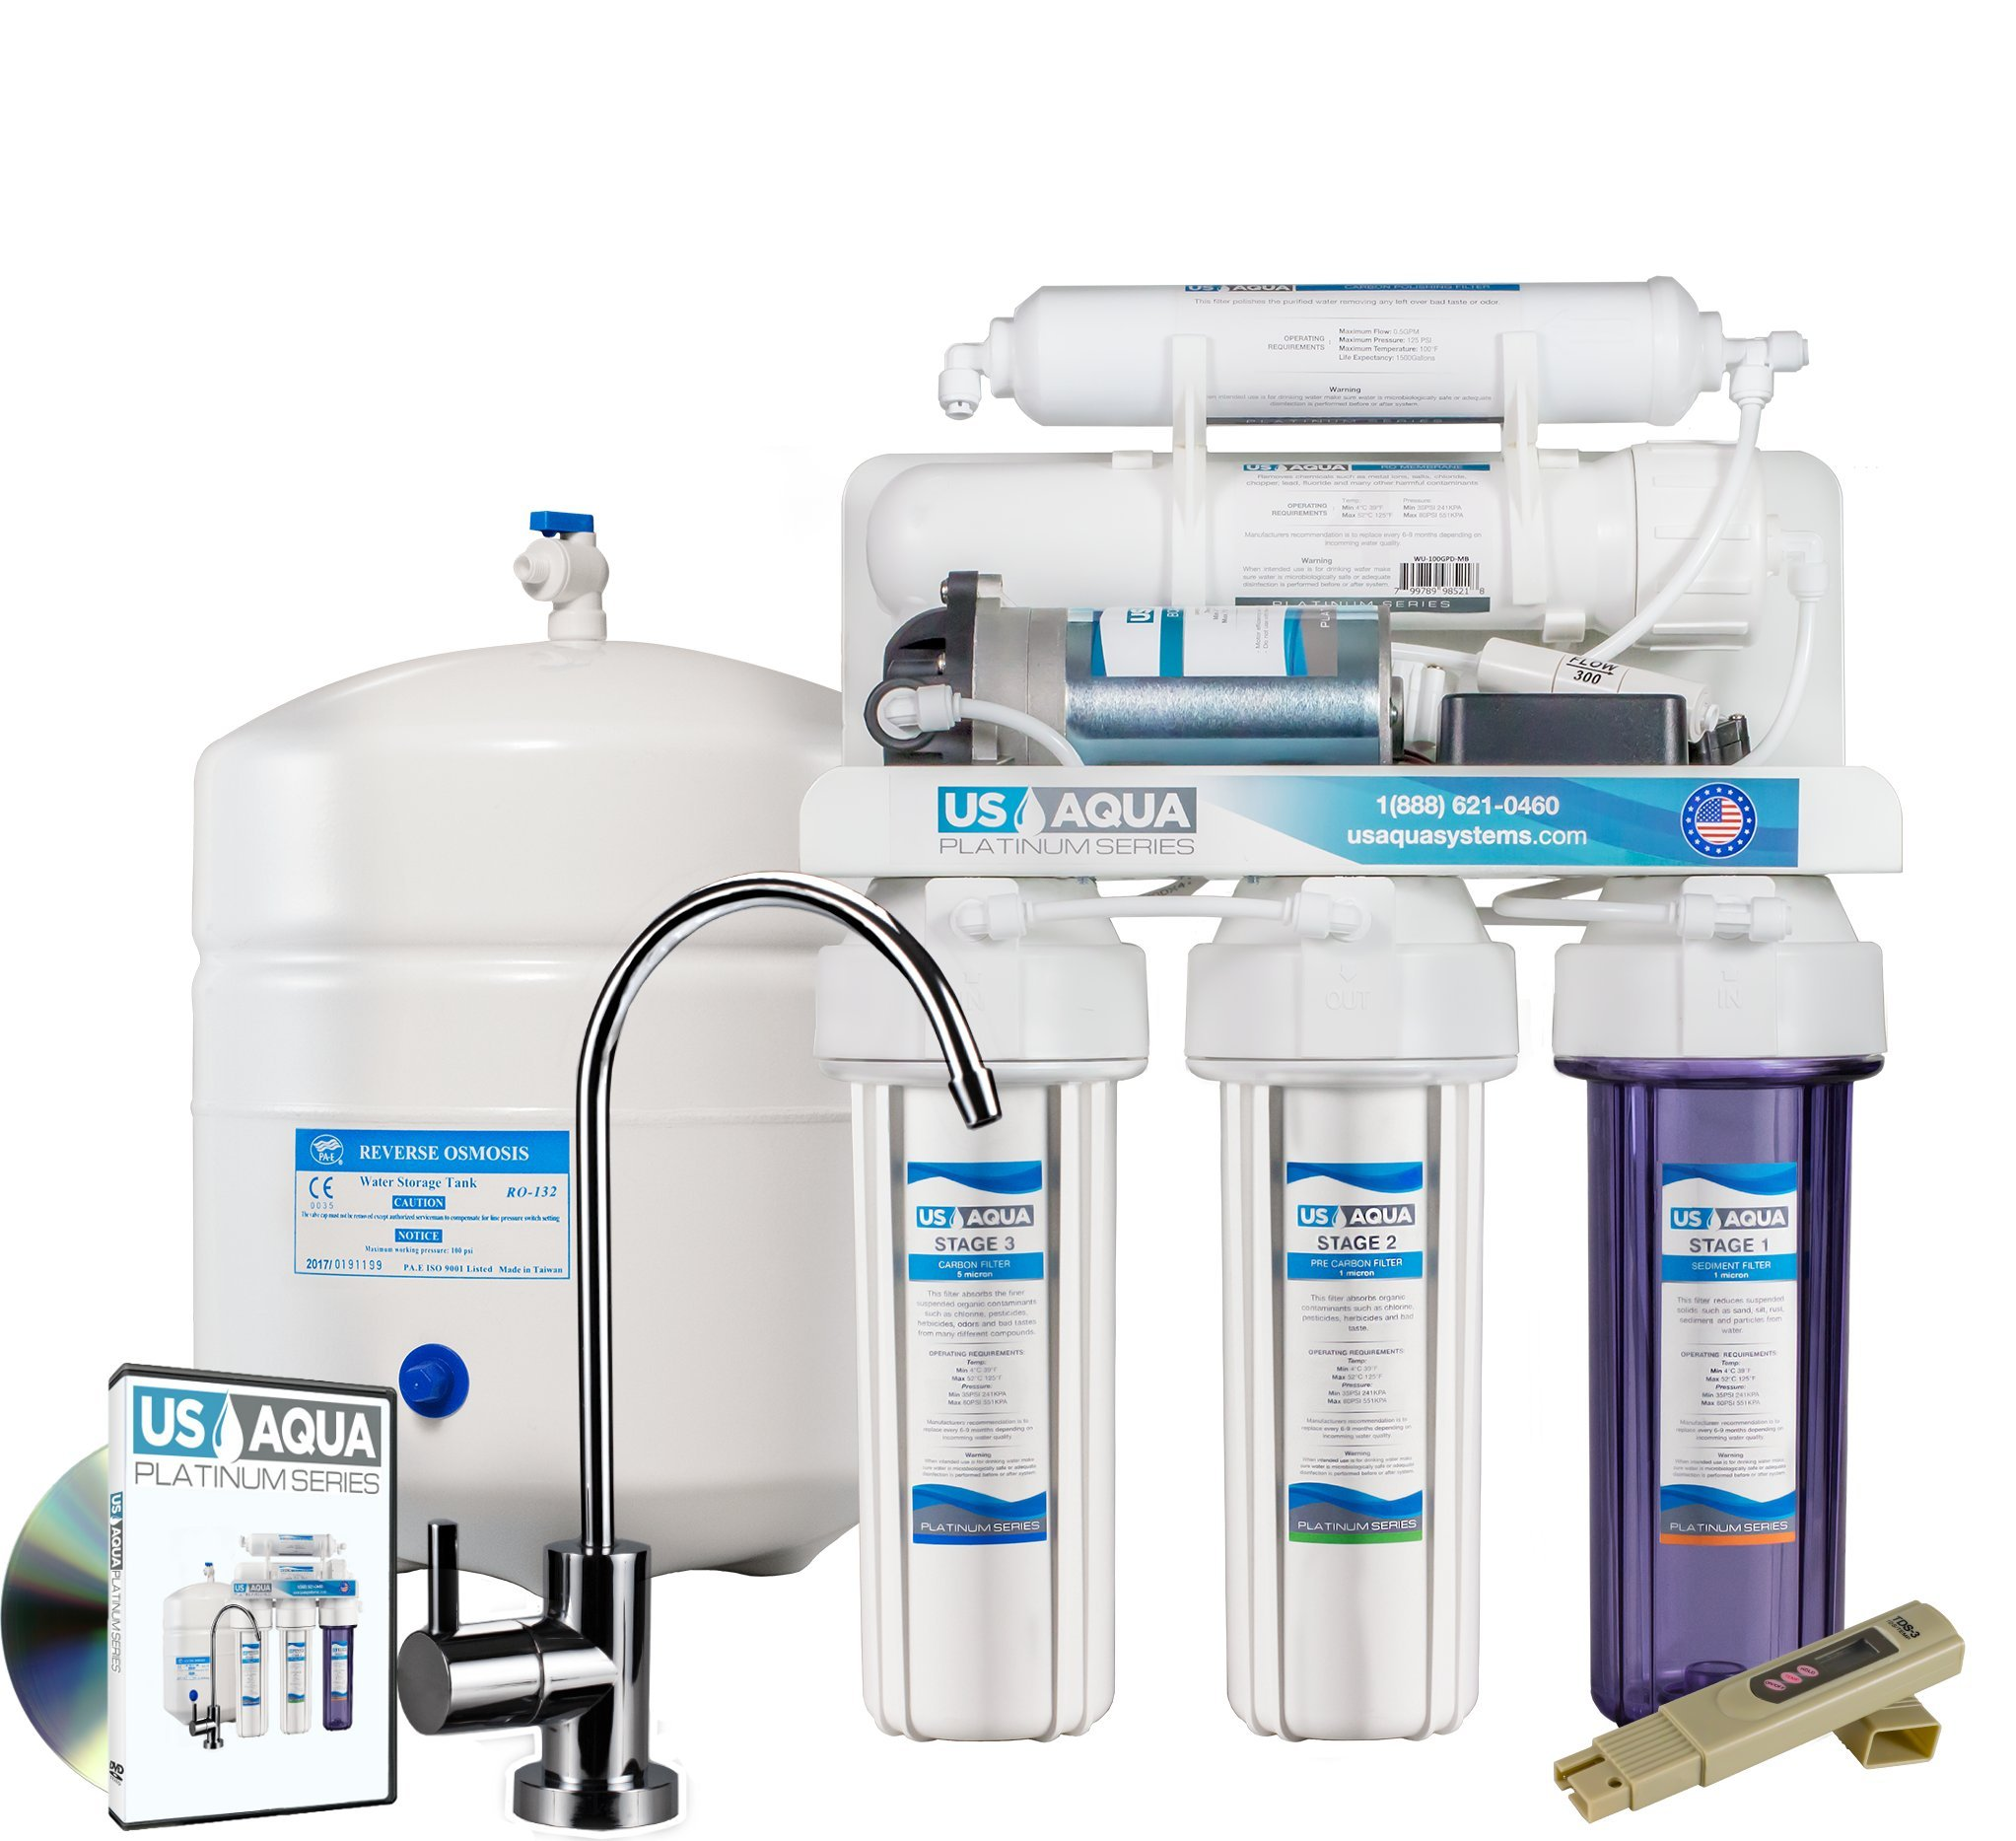 US Aqua Platinum Series Deluxe High Capacity 100GPD Under Sink Reverse Osmosis Purifier Drinking Water Filter System - Free Bonus PPM Meter and Installation DVD (5 Stage, With Pump)